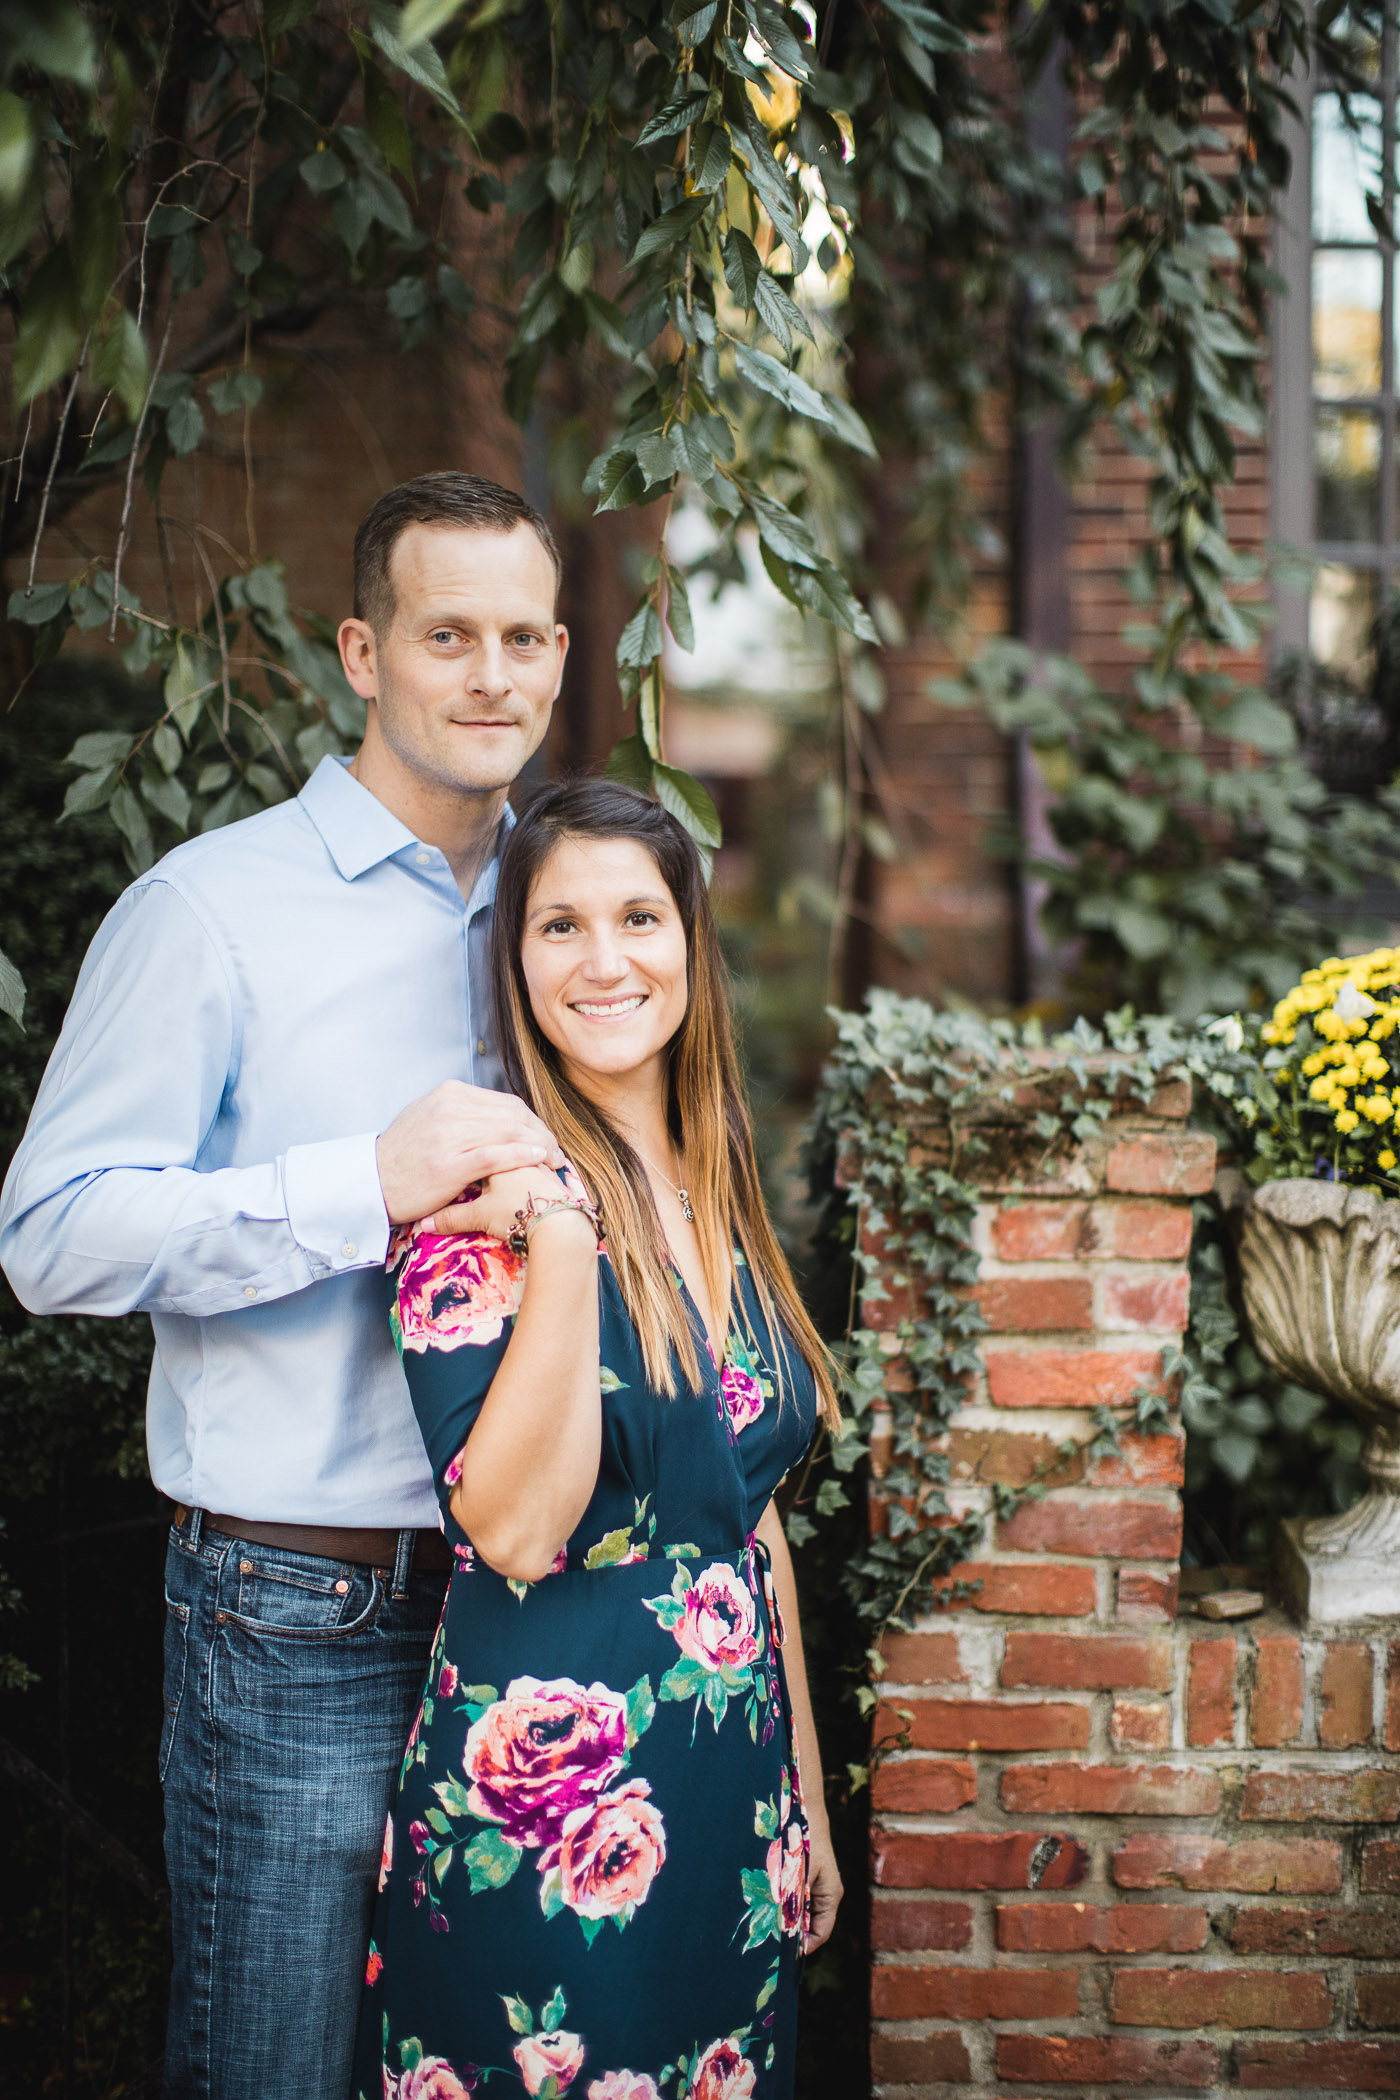 Hand & Hand & Paw Engagement Session on the Streets of Annapolis 15